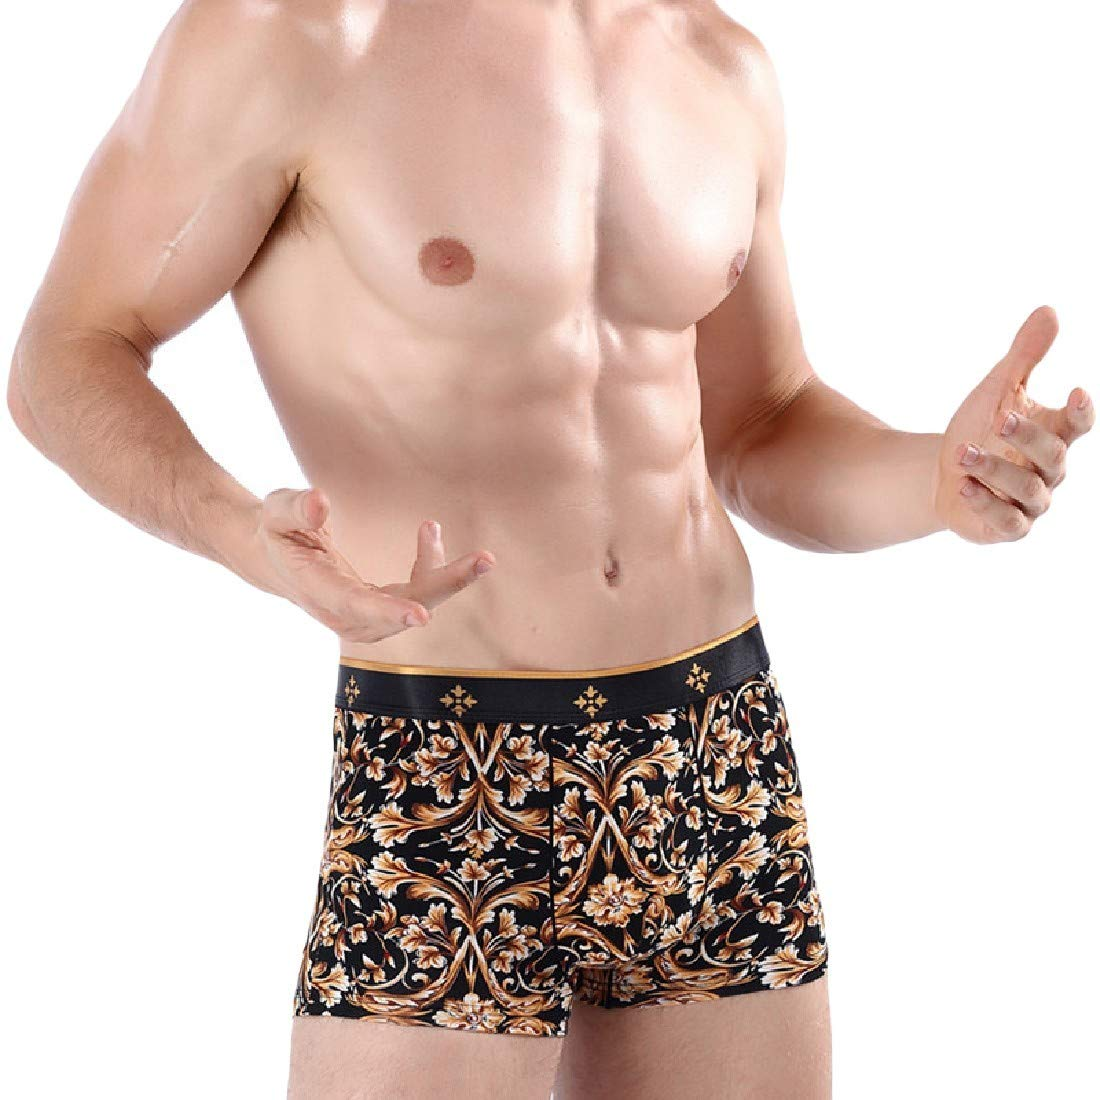 Mfasica Men Vogue Breathable Cotton Printing Underwear Boxer